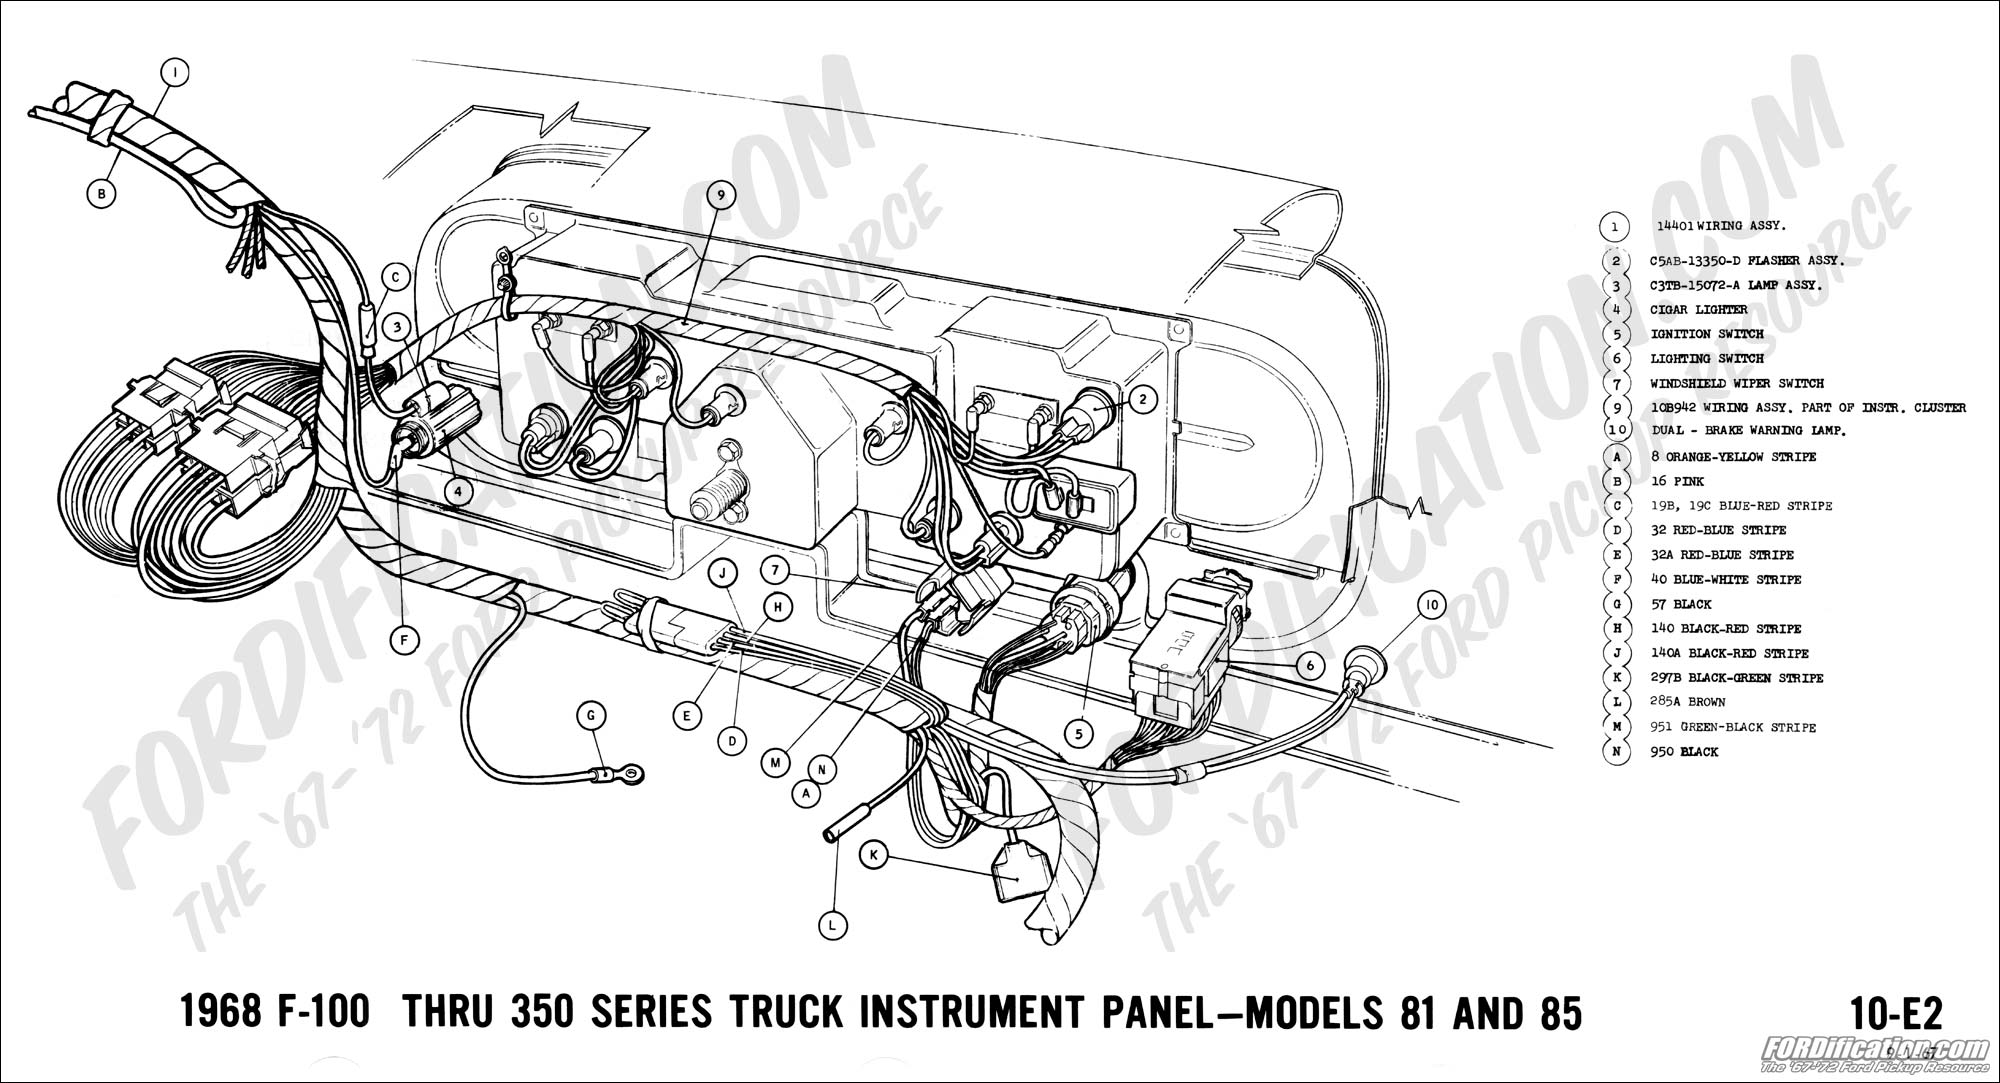 ford f100 fuse box online circuit wiring diagram u2022 rh electrobuddha co uk 1970 ford f250 fuse box 1970 ford torino fuse box